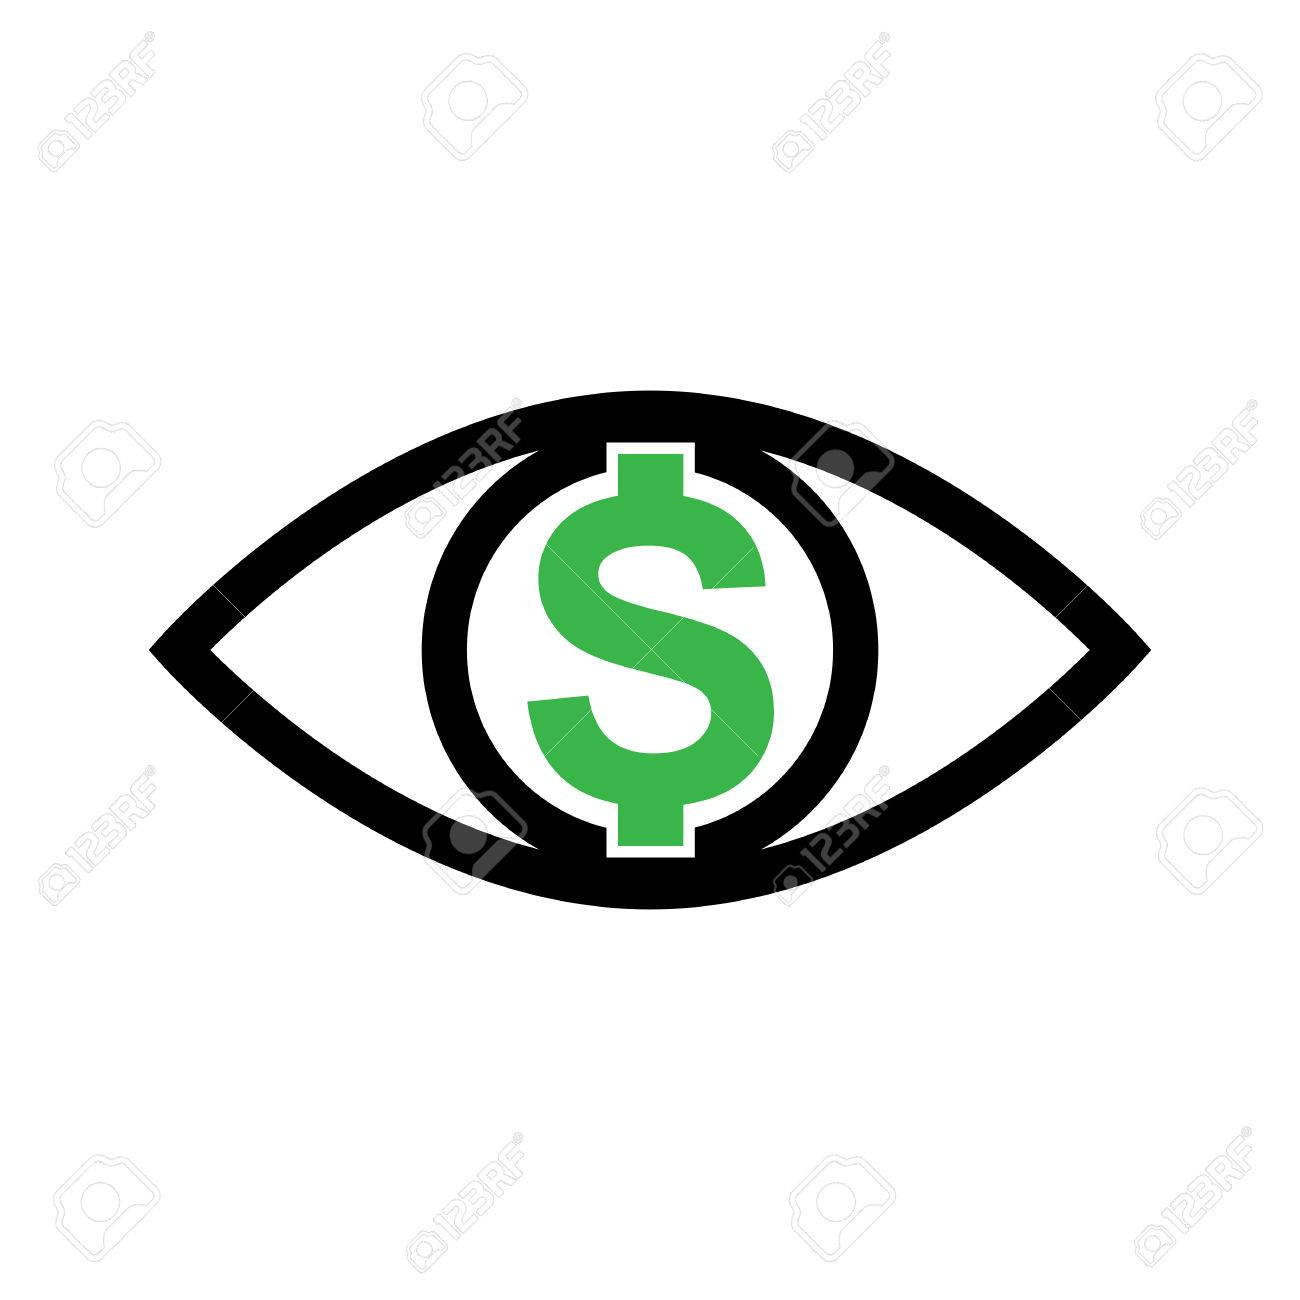 hight resolution of eye with dollar icon greed sign profit or need money symbol isolated stock vector